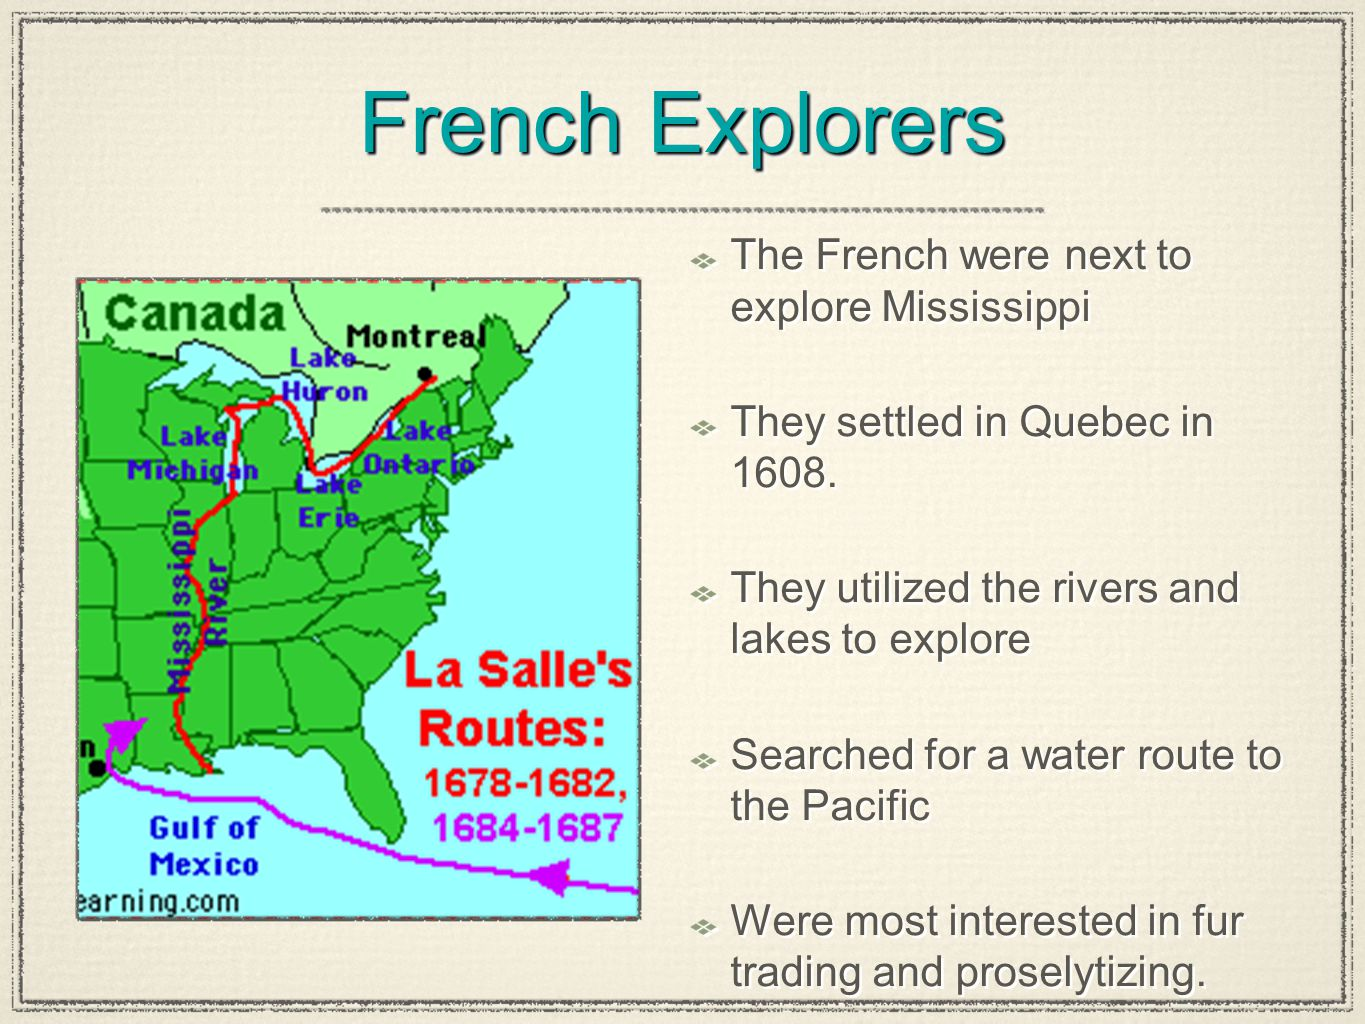 French Explorers The French were next to explore Mississippi They settled in Quebec in 1608. They utilized the rivers and lakes to explore Searched fo